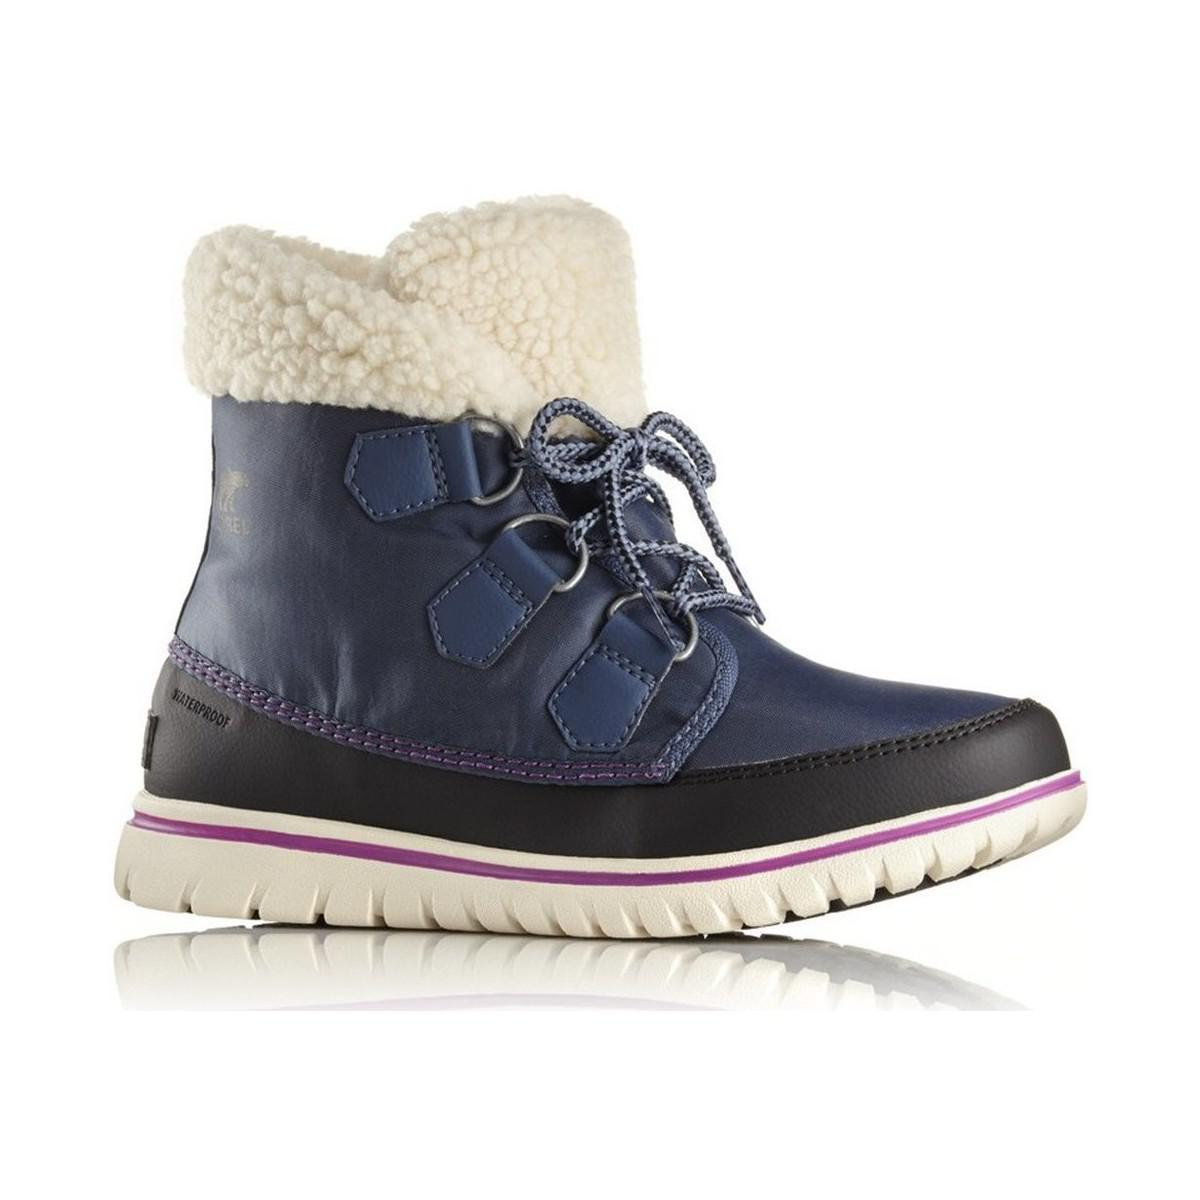 9065d6b2369c Sorel Cozy Carnival Women s Snow Boots In White in White - Lyst